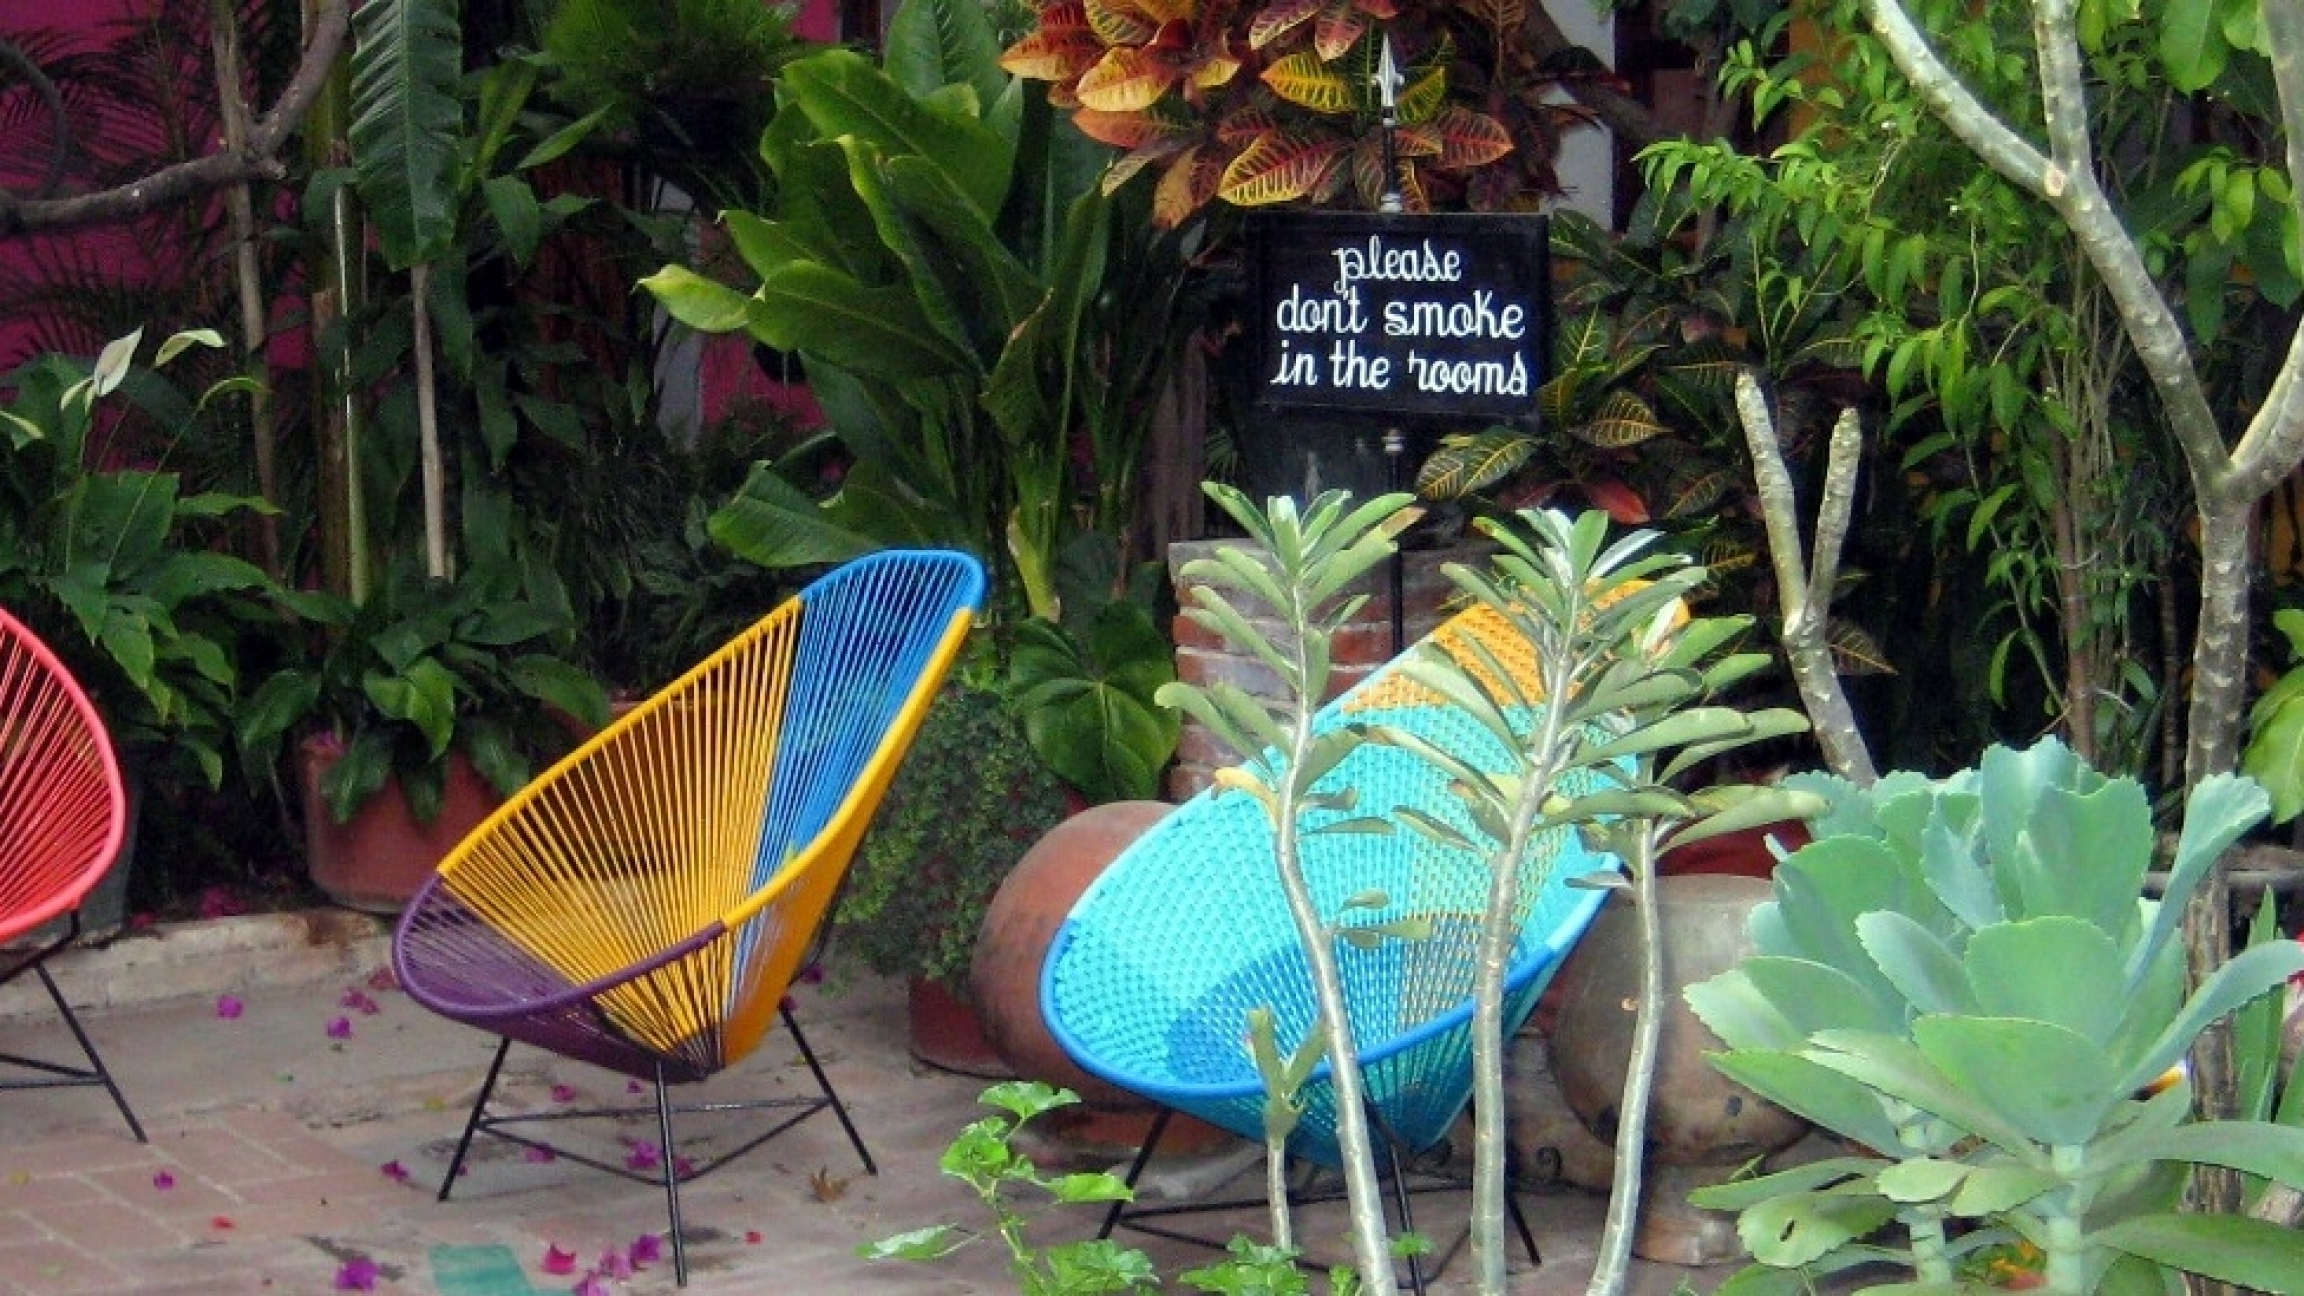 A colorful patio with chairs and greenery and a no-smoking sign